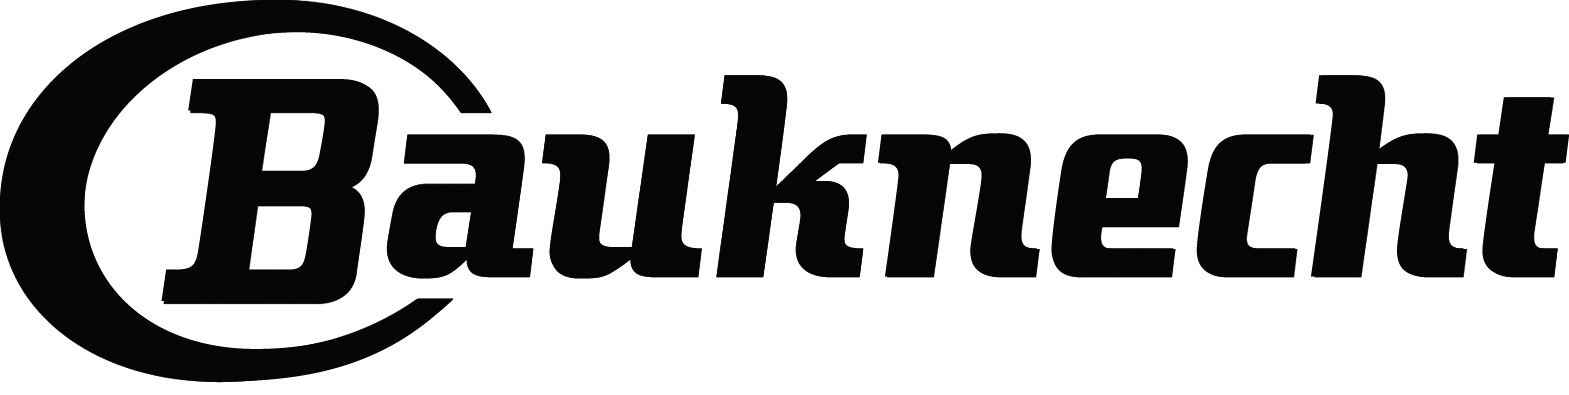 Bauknecht Logo photo - 1